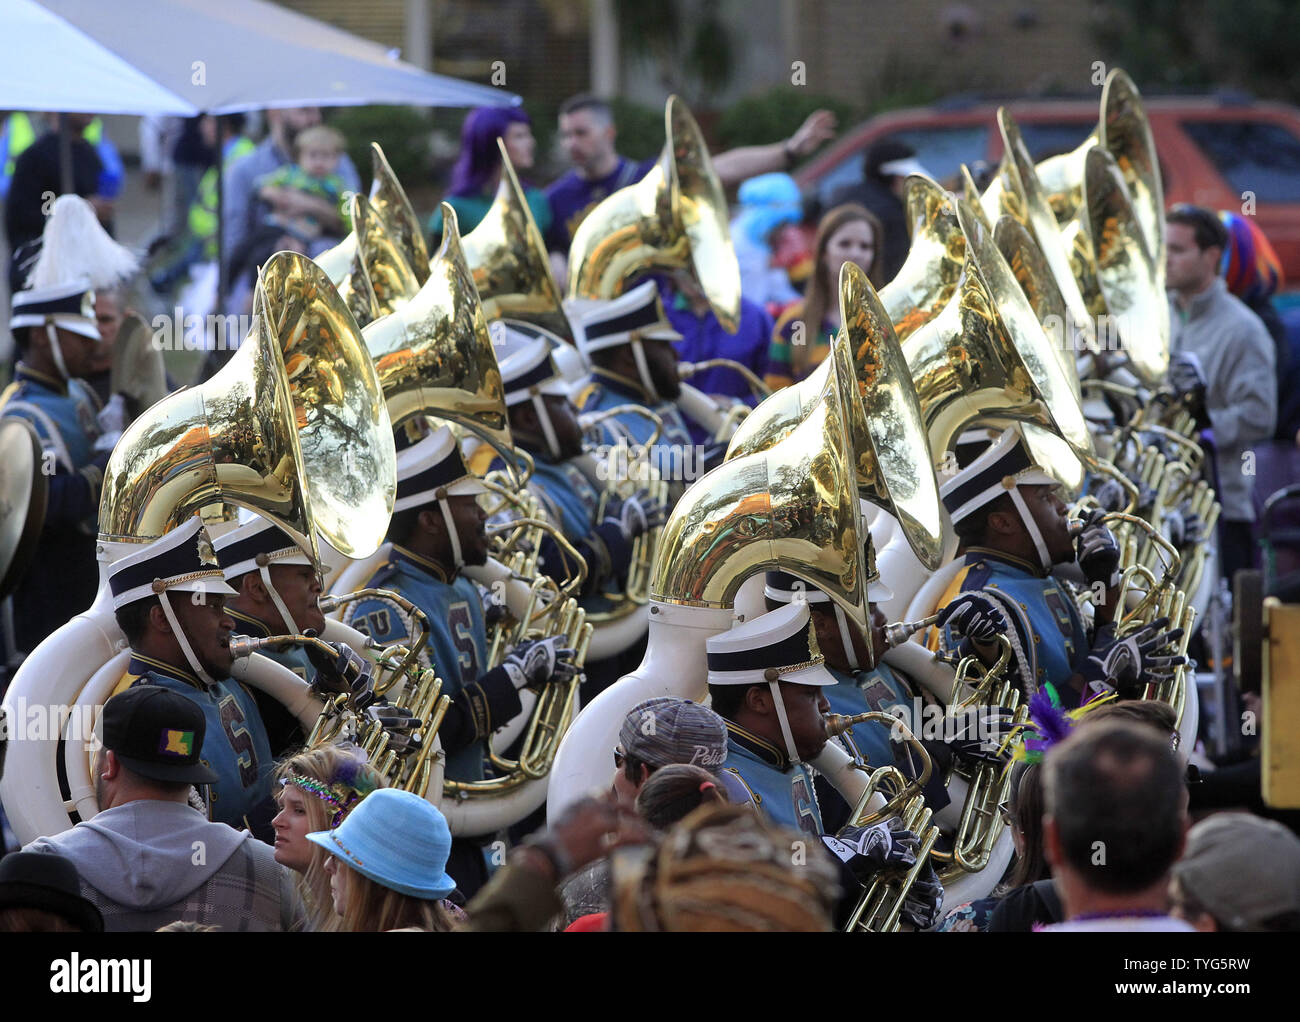 The Southern University Marching Band entertains Mardi Gras crowds during the Bacchus parade on Sunday, February 26, 2017. The Krewe of Bacchus has been rolling on the traditional Uptown route since 1969. Photo by AJ Sisco/UPI Stock Photo